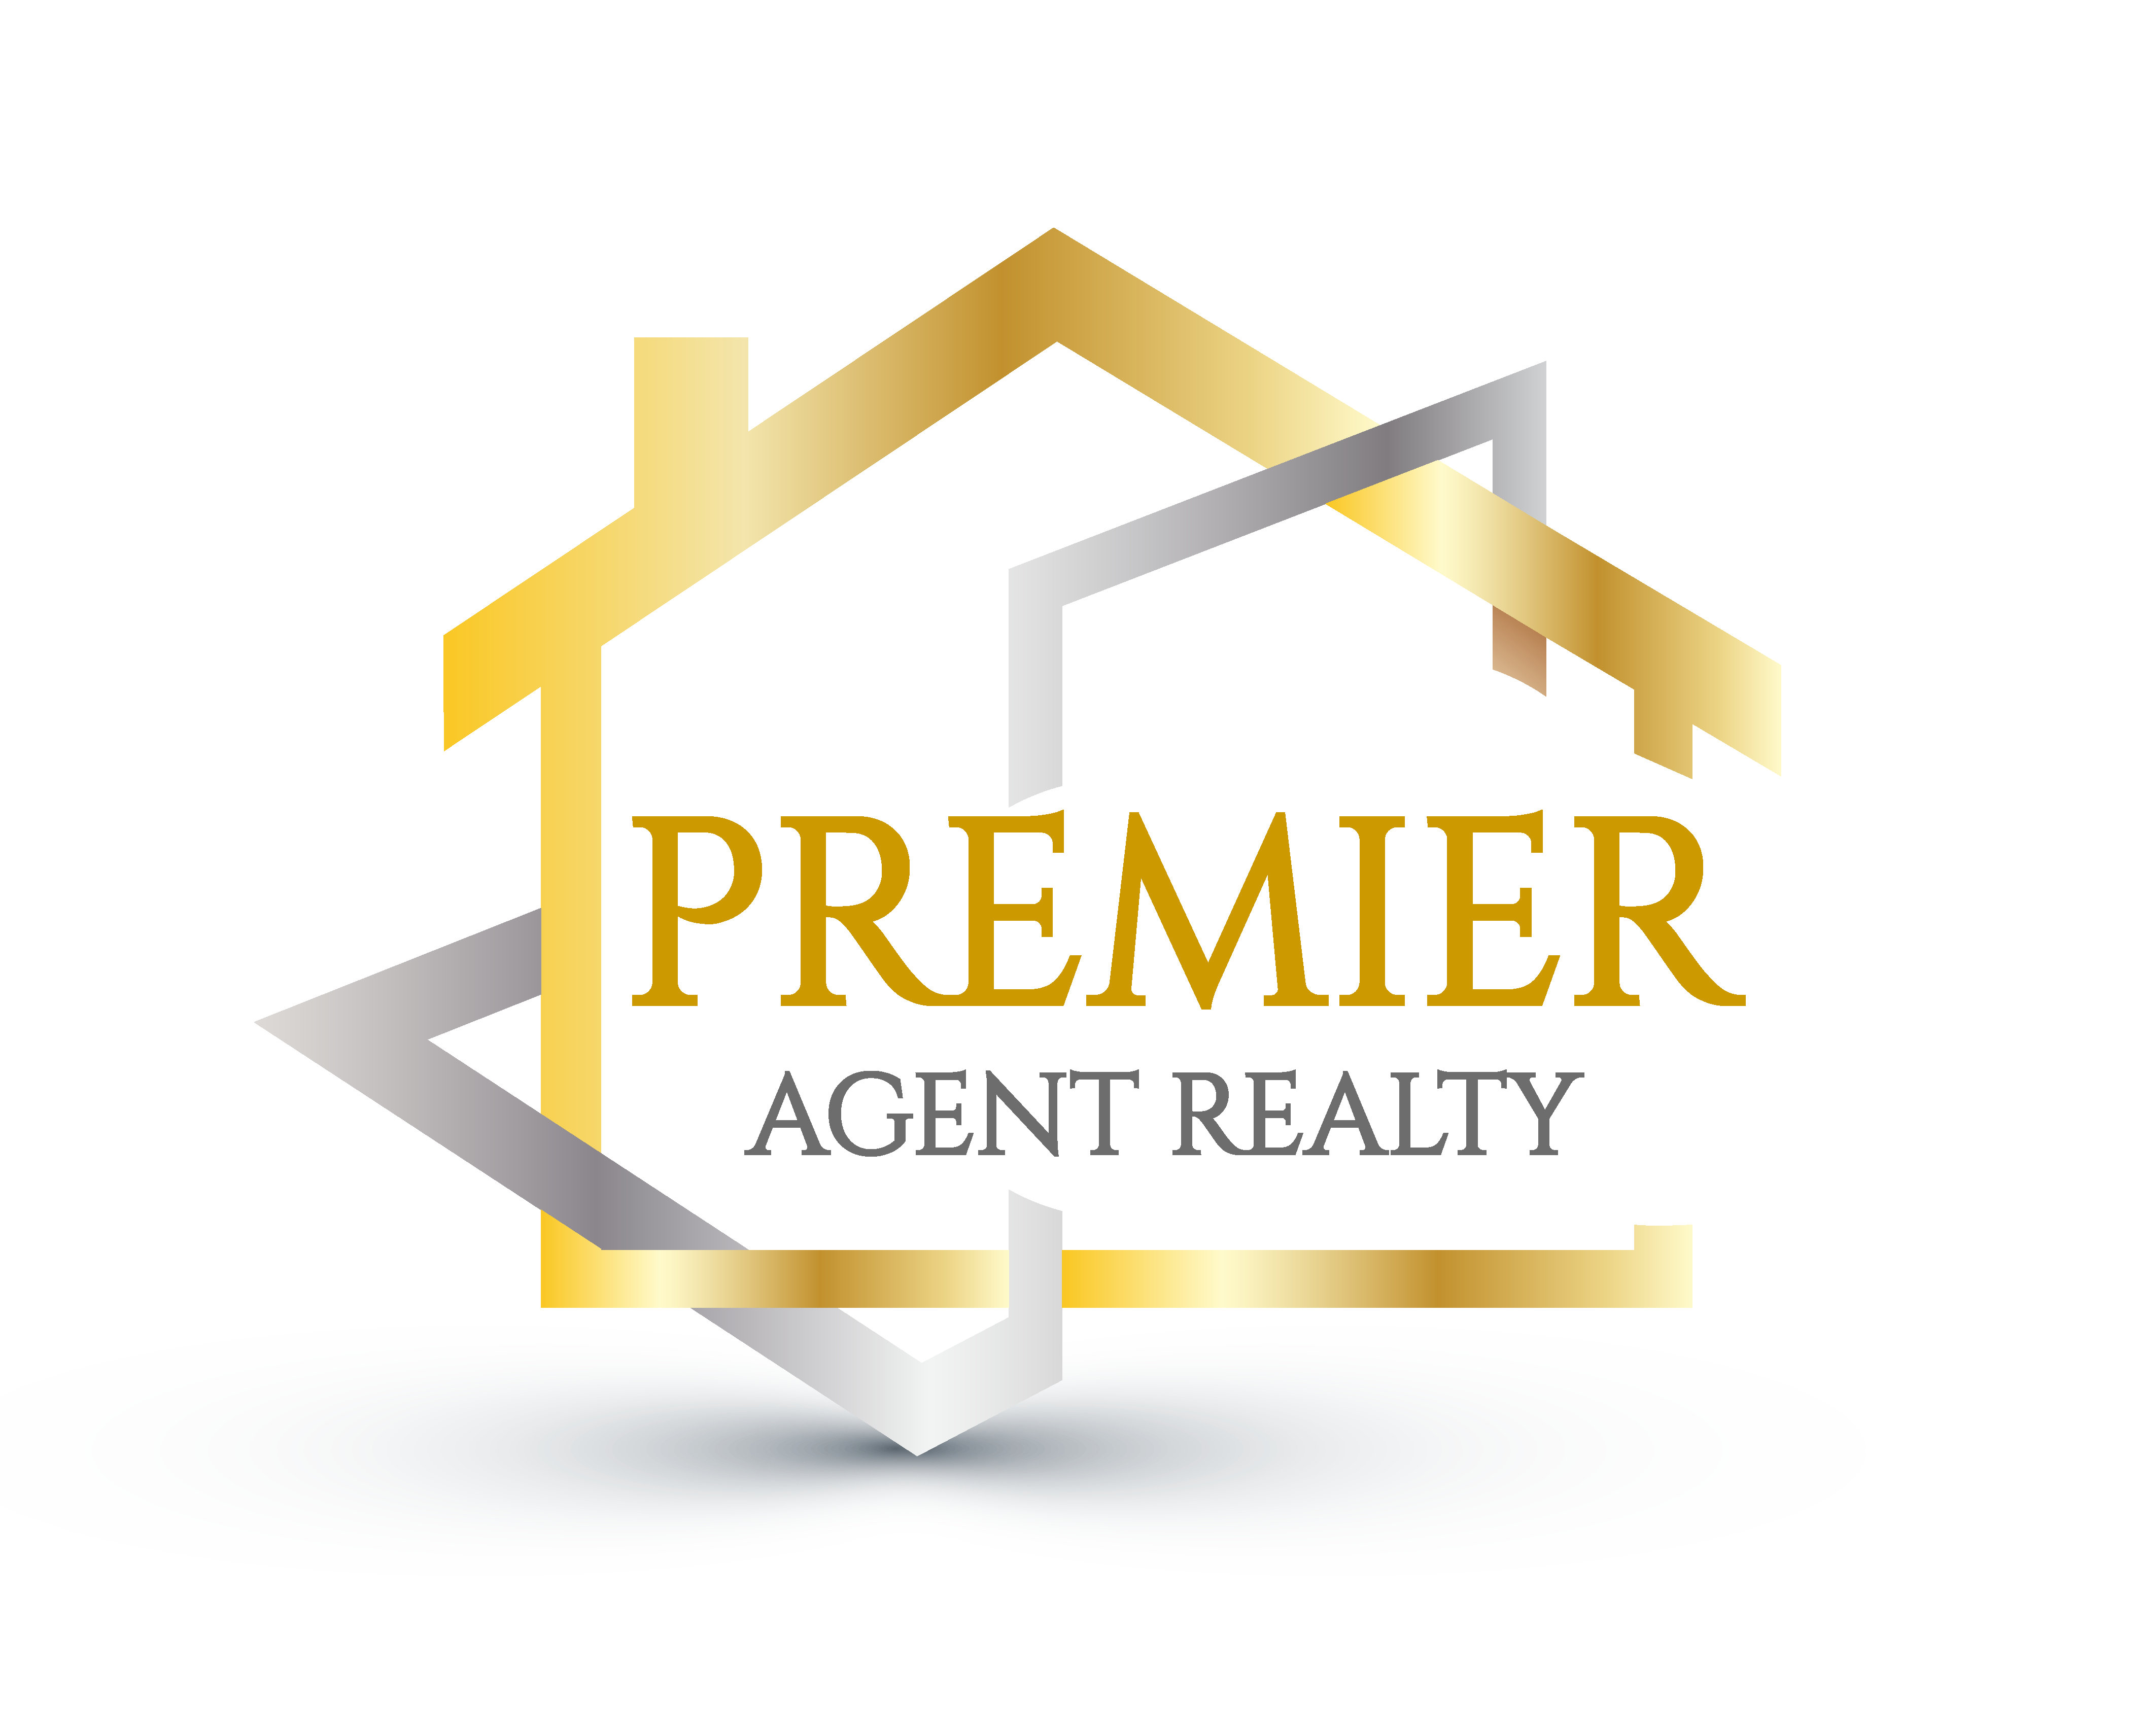 Premier Agent Realty